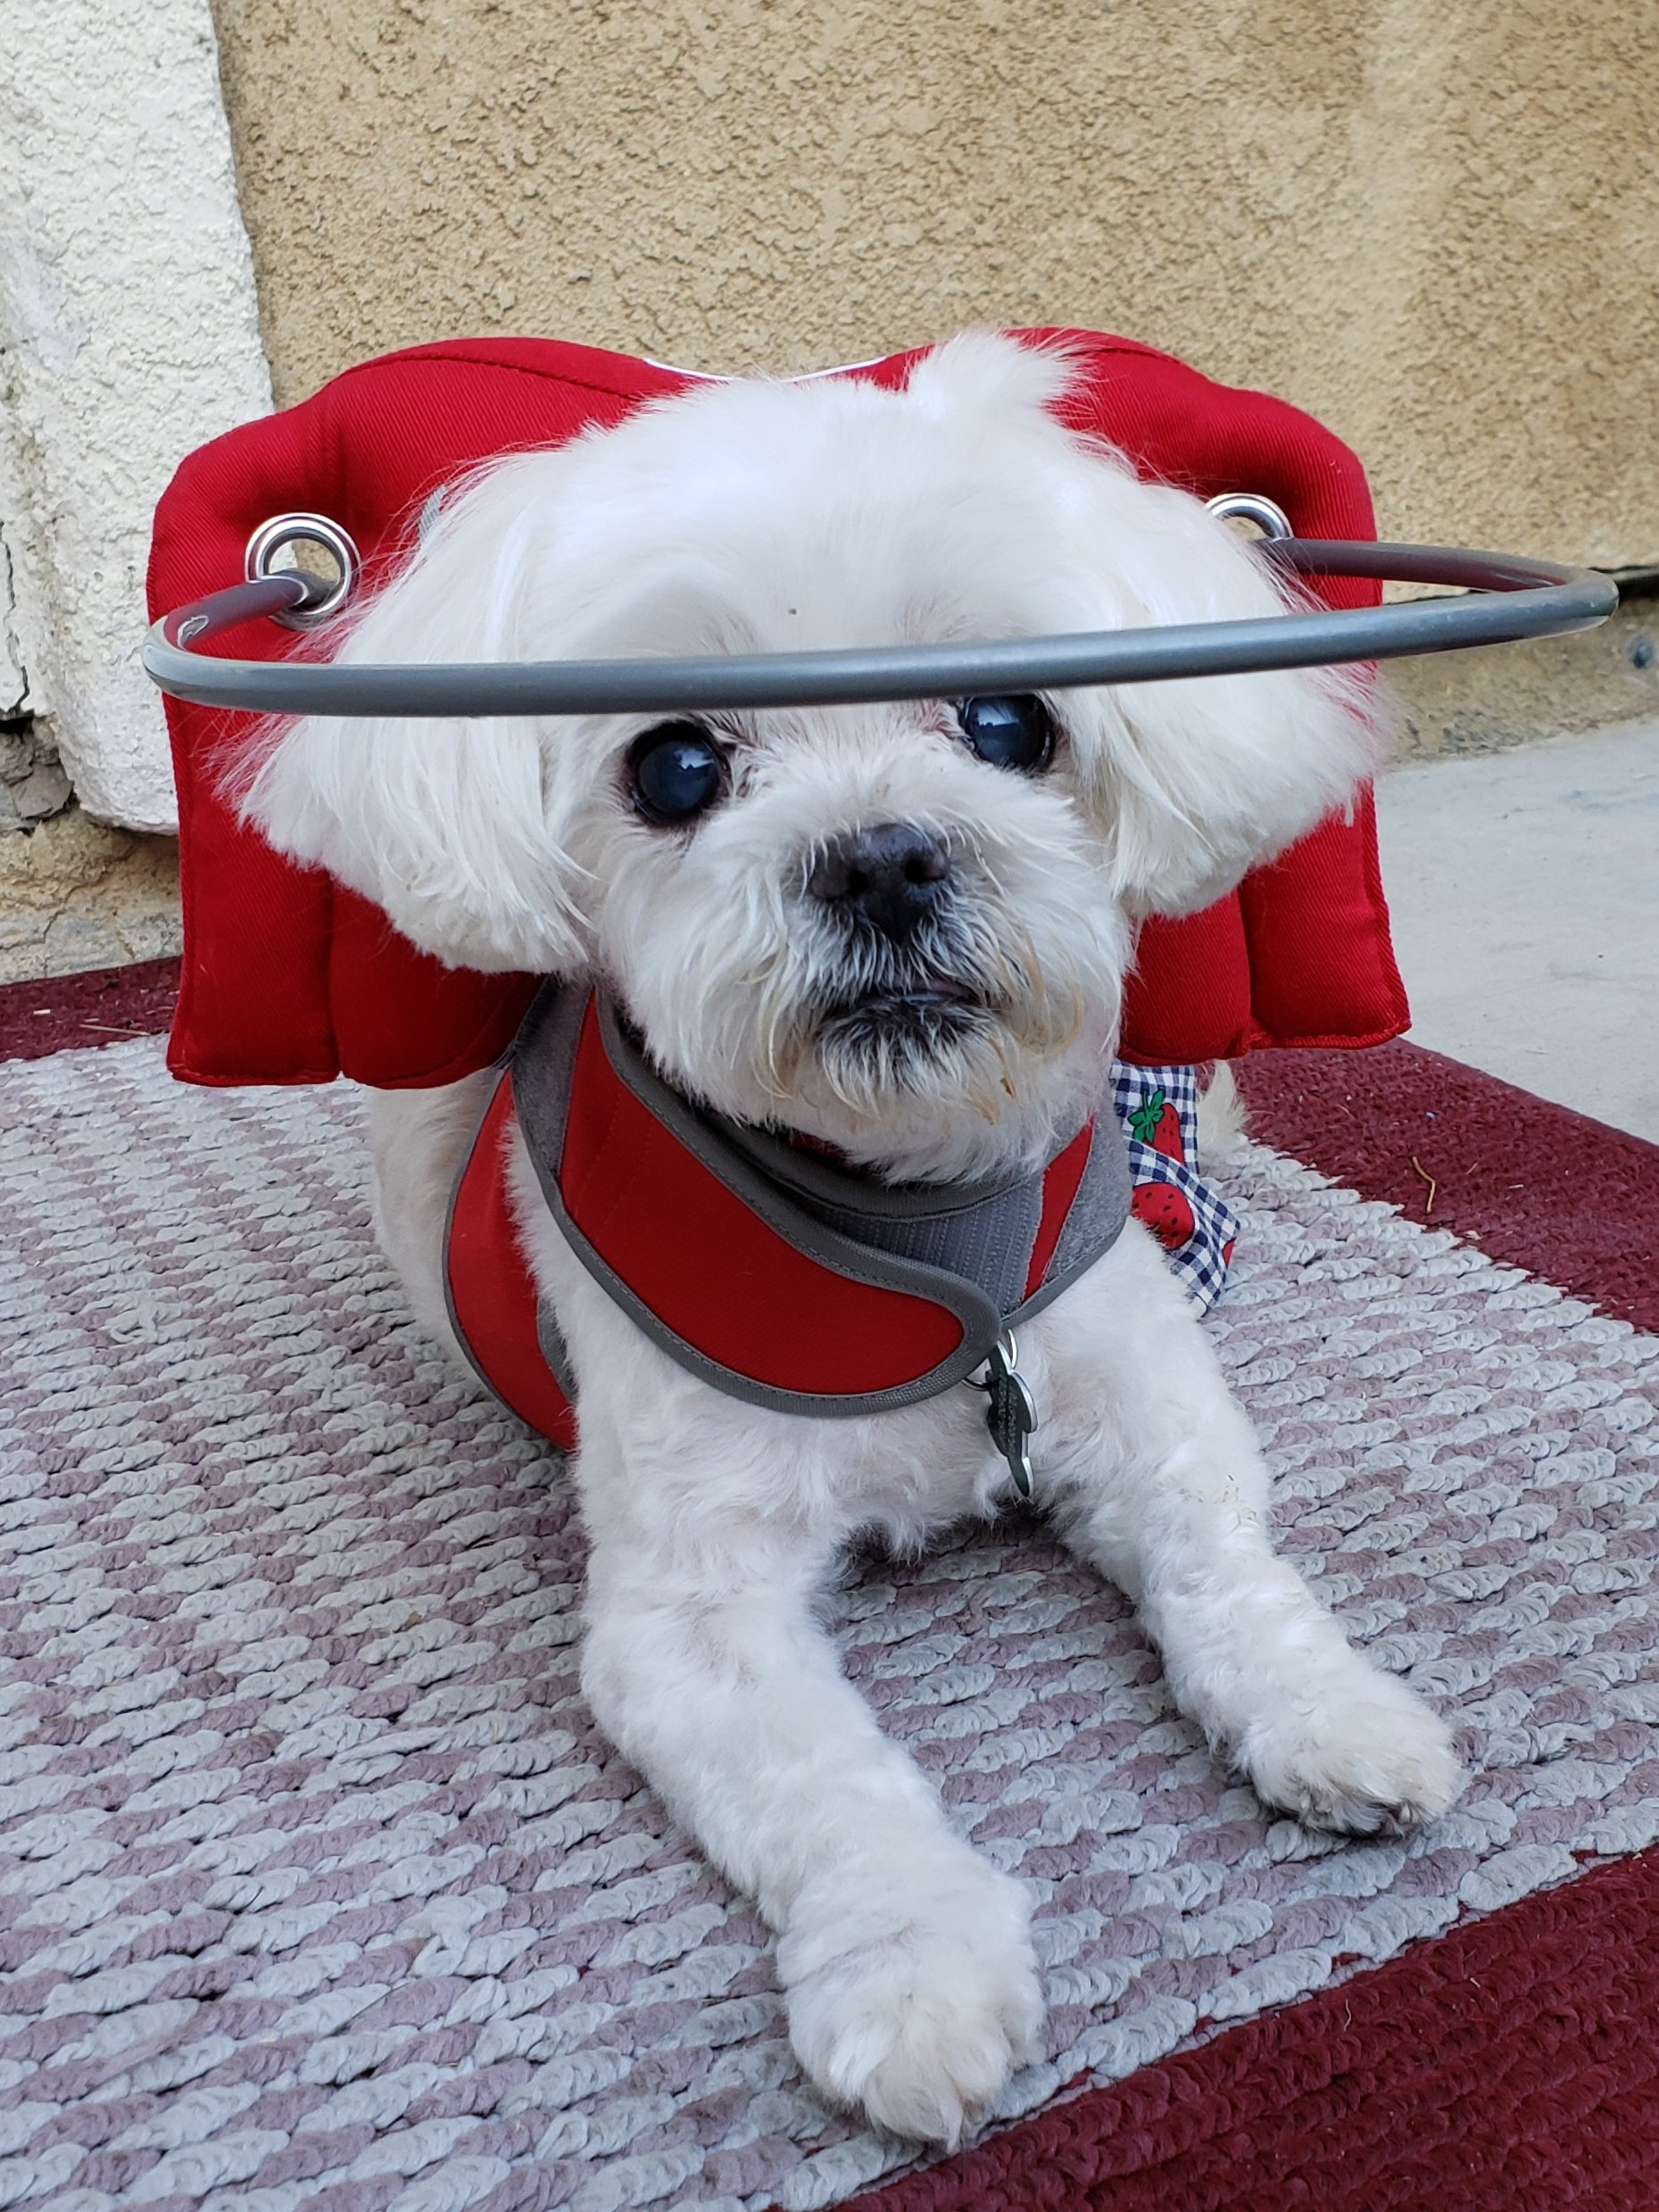 Small dog wears a red muffins halo while sitting on rug